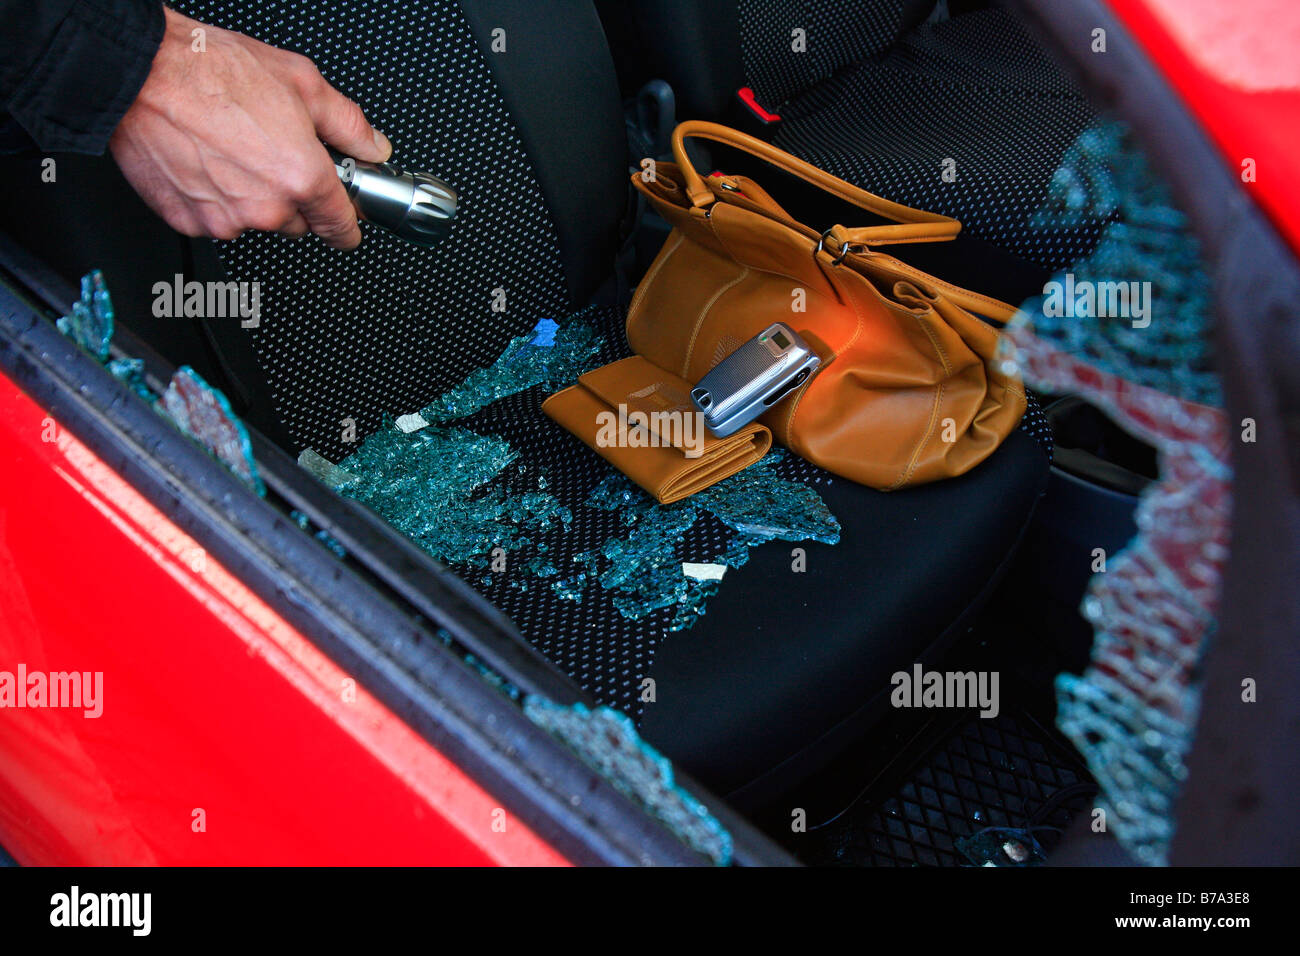 Car burglary, hand holds a torch through the broken side window on the look out for valuables, i.e. handbag, purse - Stock Image